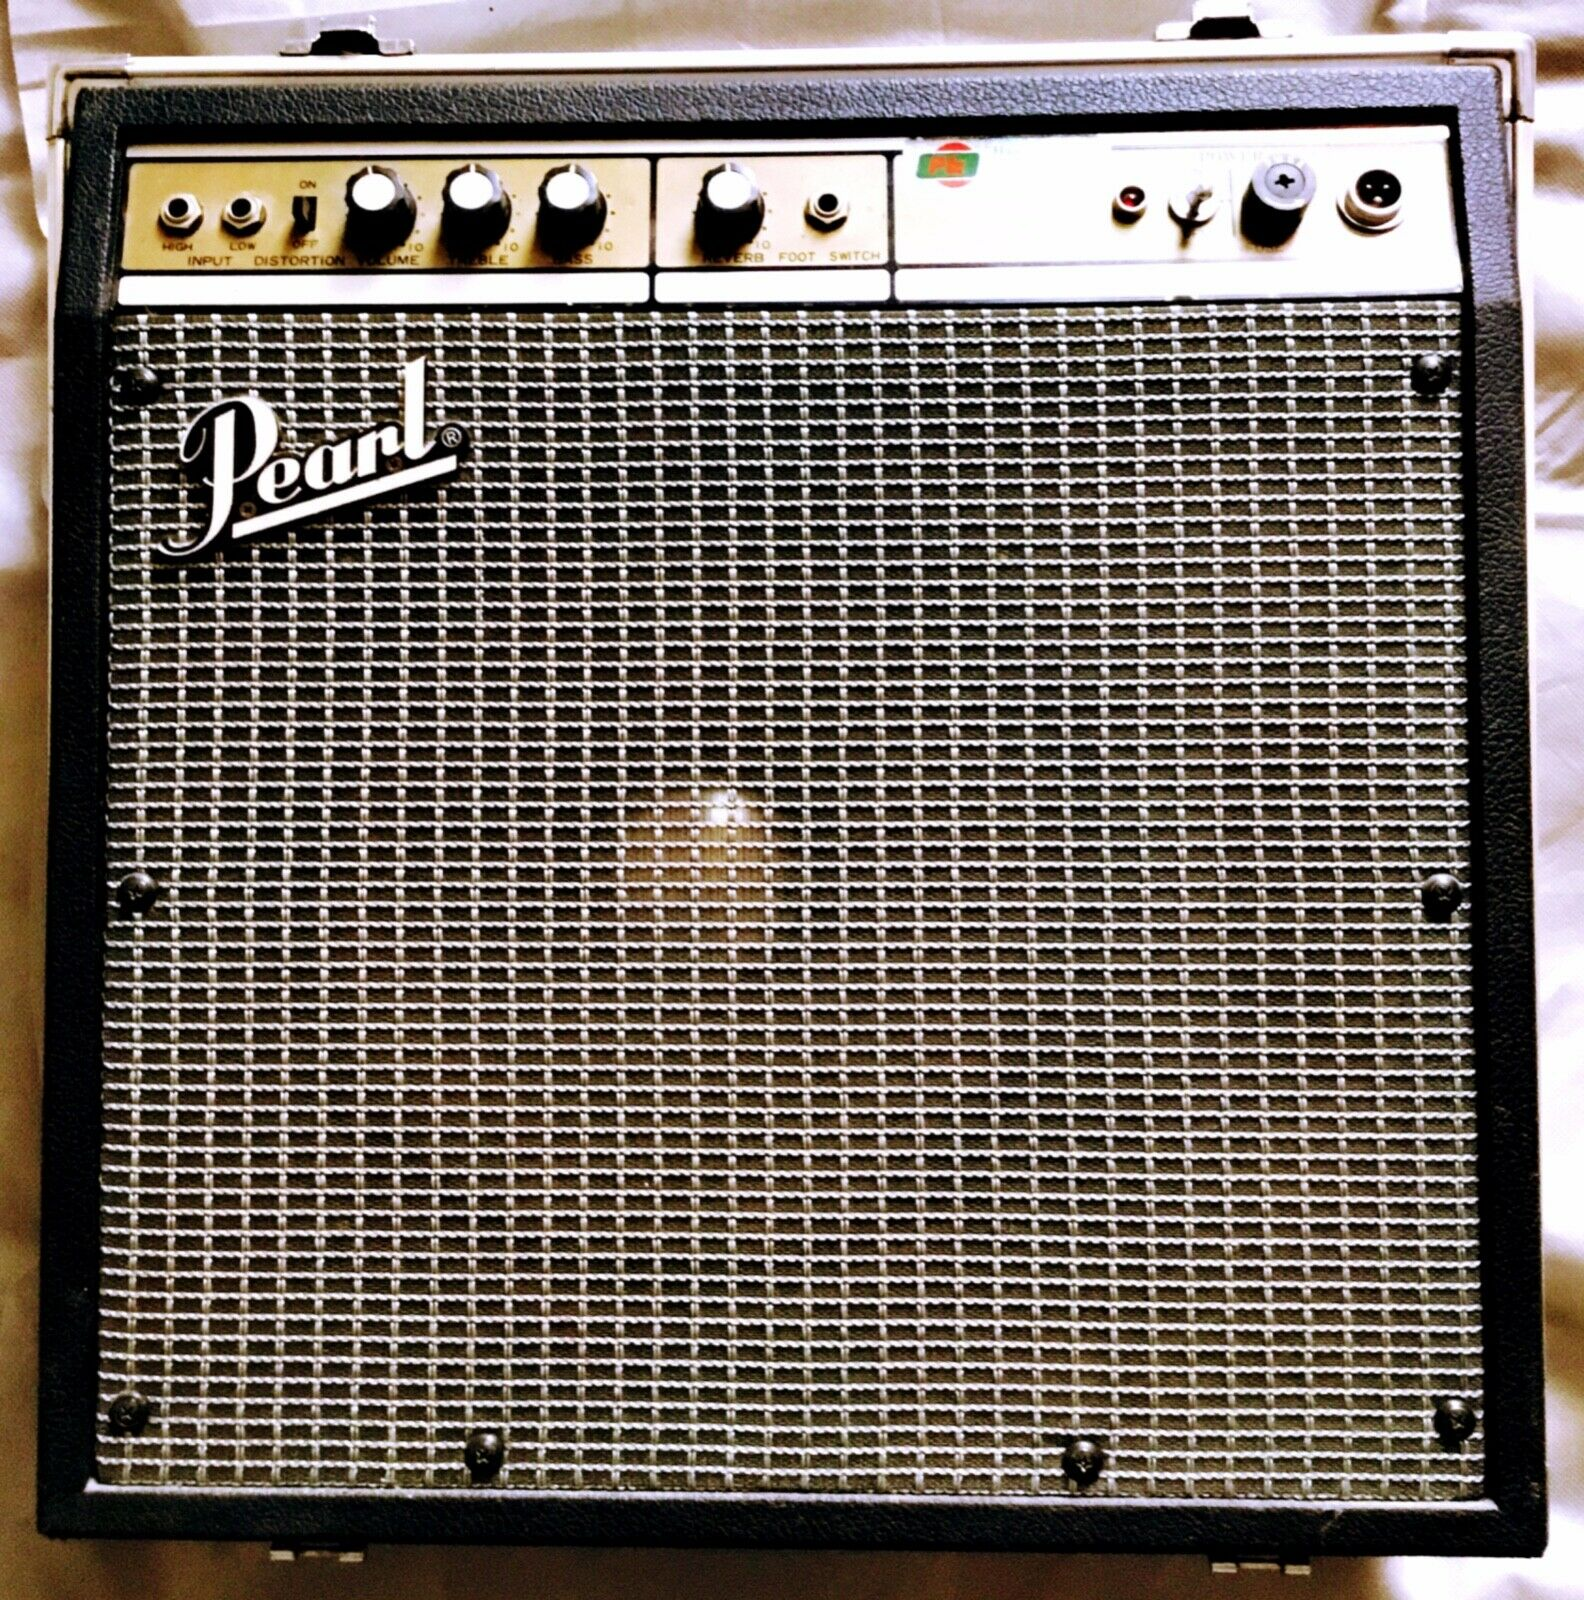 Click image for larger version.  Name:PEARL-Bass-Amp-SS-061-.jpg Views:12 Size:593.2 KB ID:55923